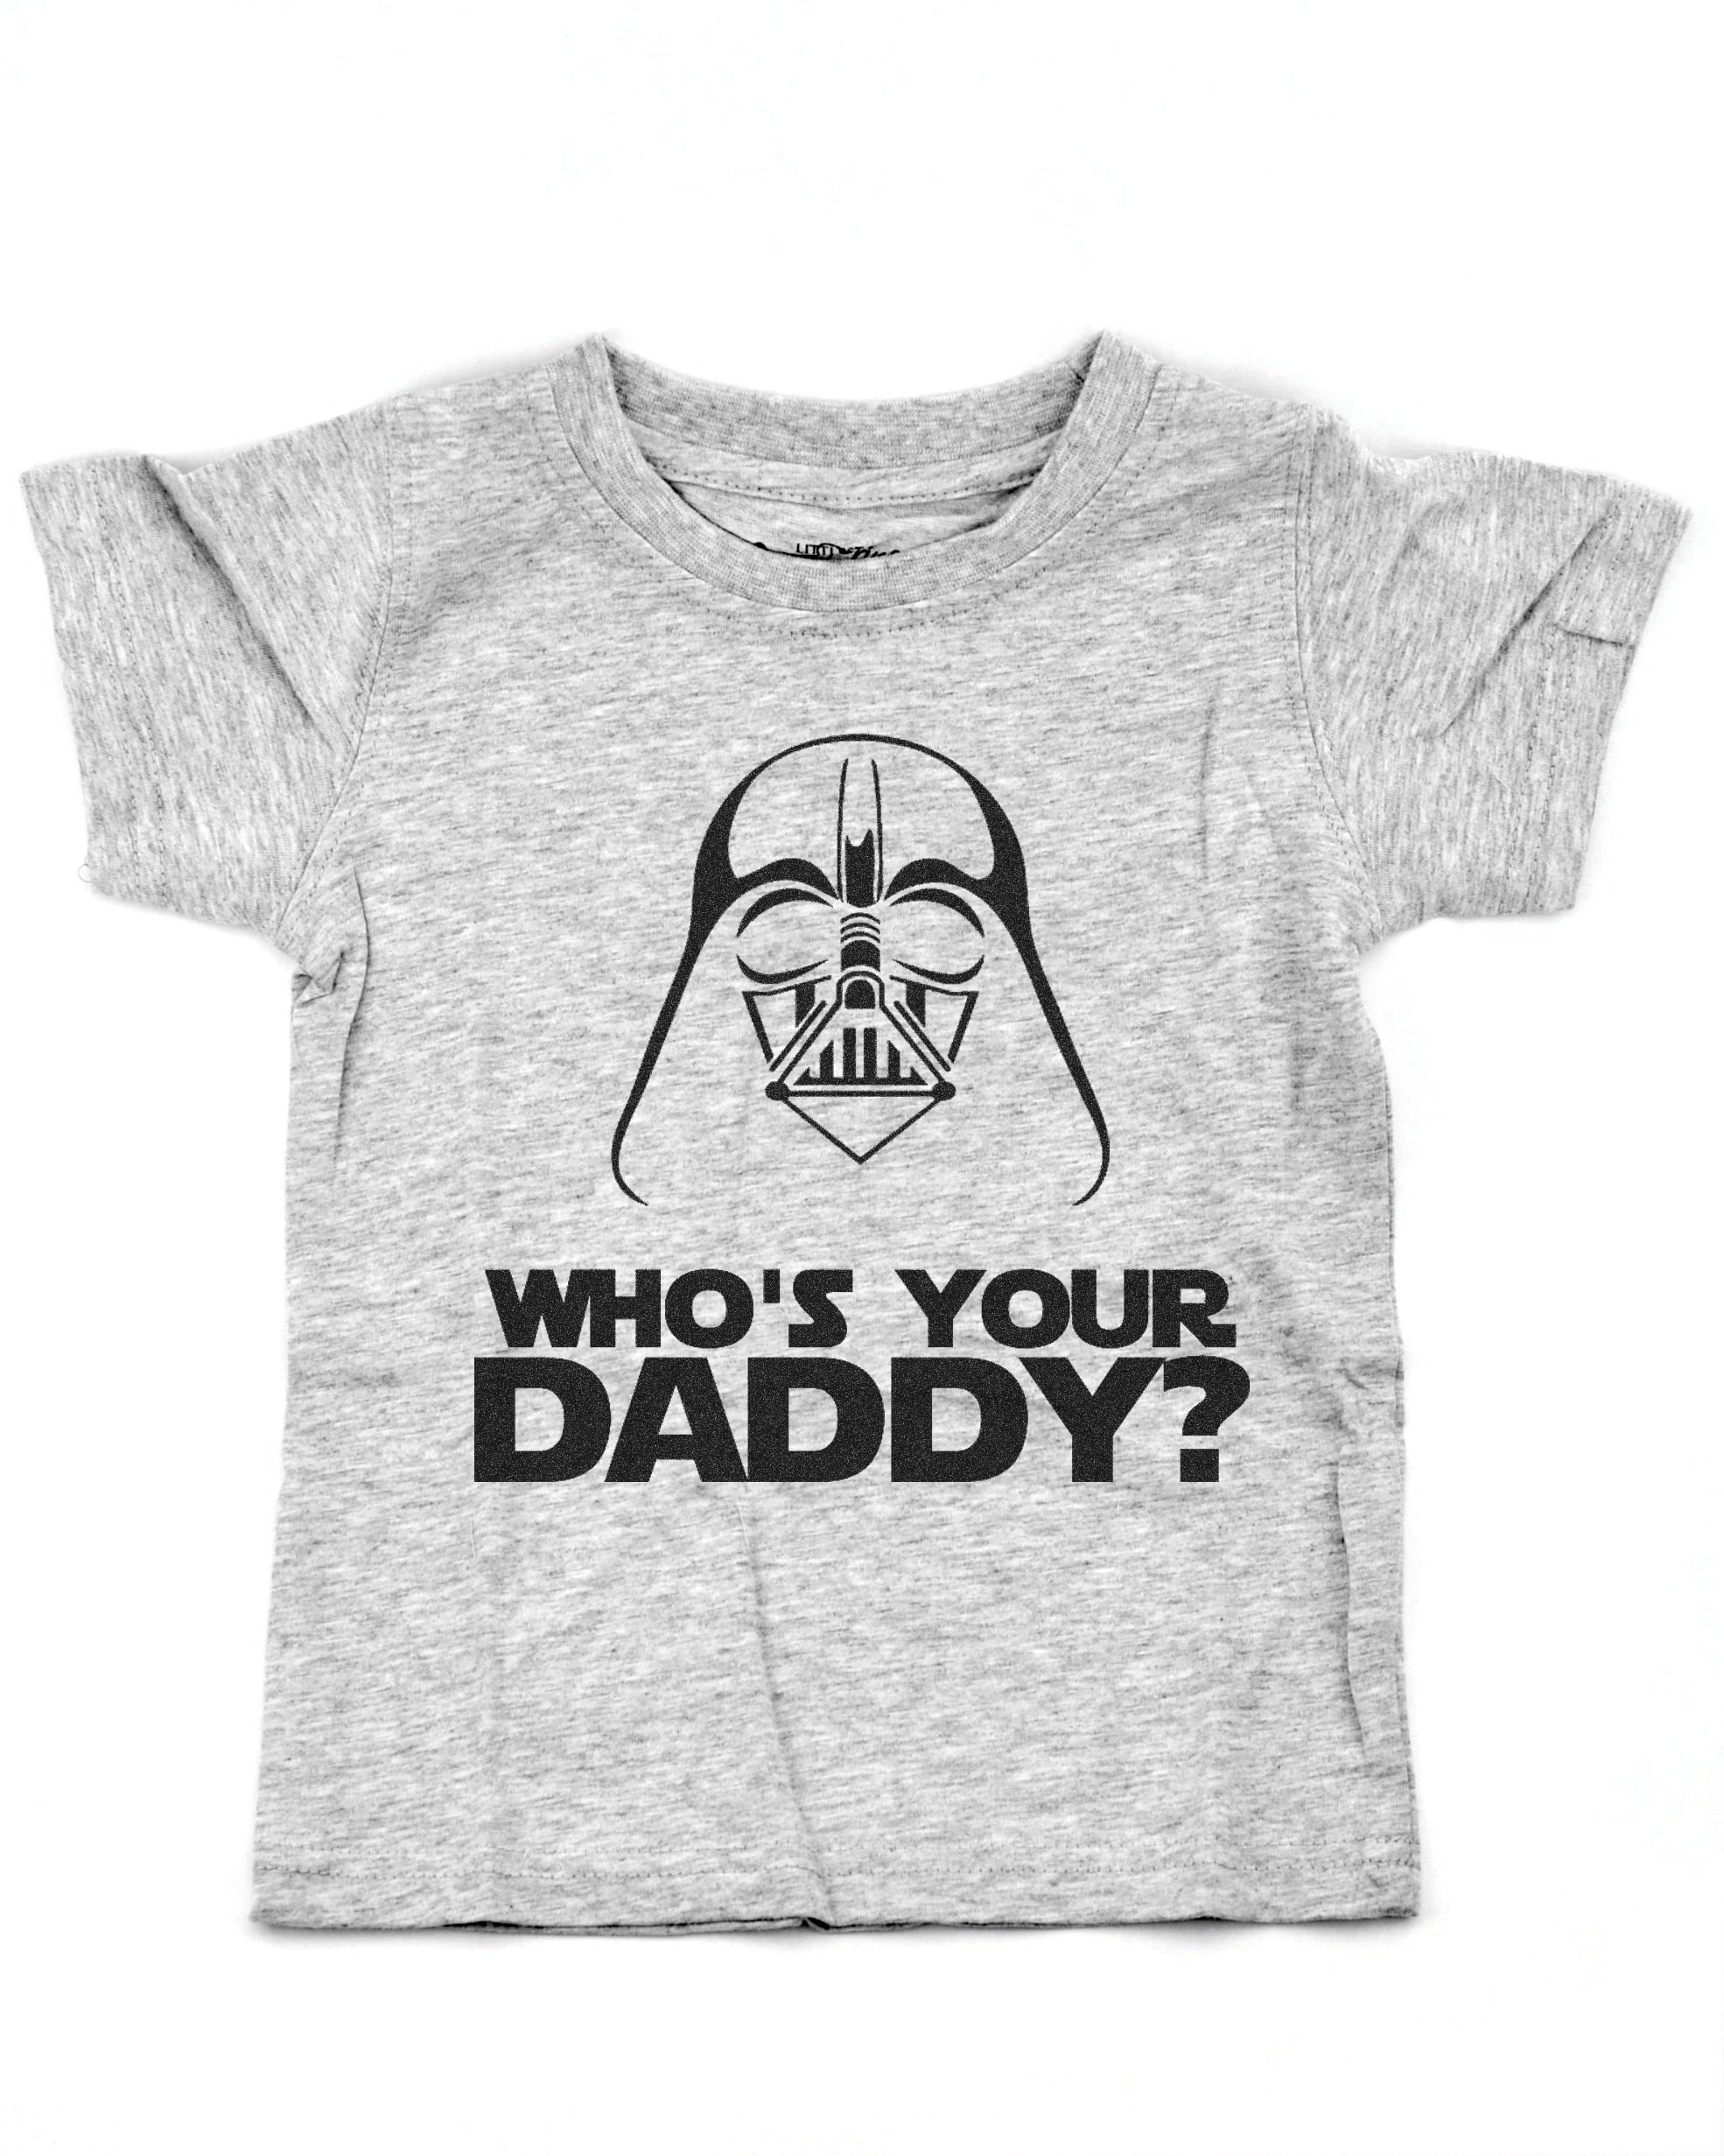 sws-wyd-gc-who-s-your-daddy-gray-shirt.jpg